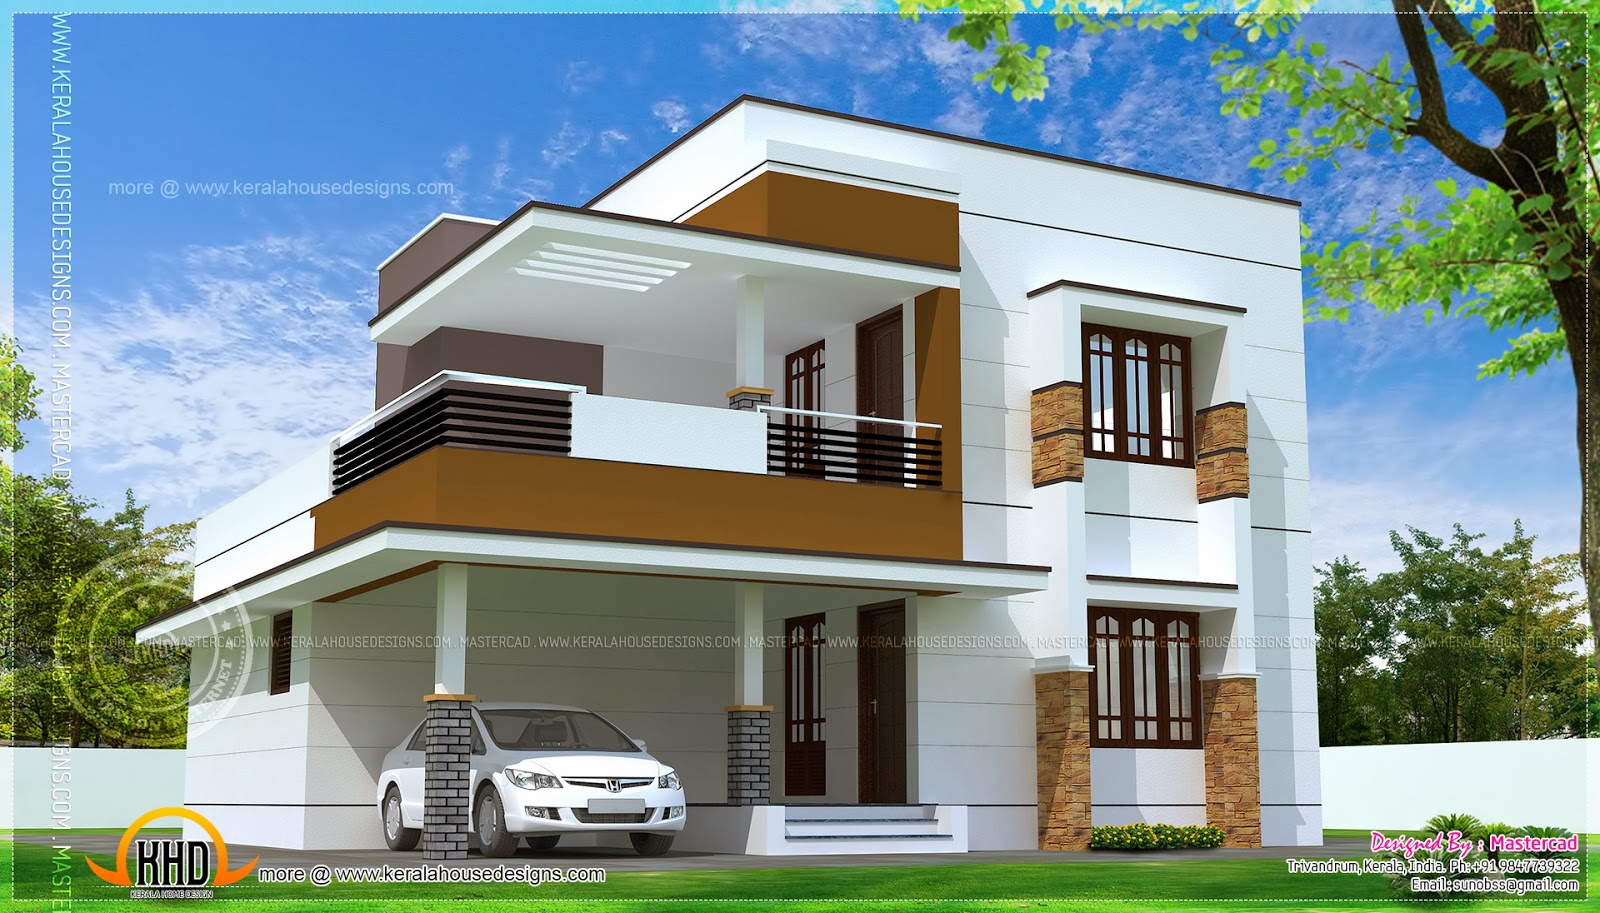 November 2013 kerala home design and floor plans - Design house ...